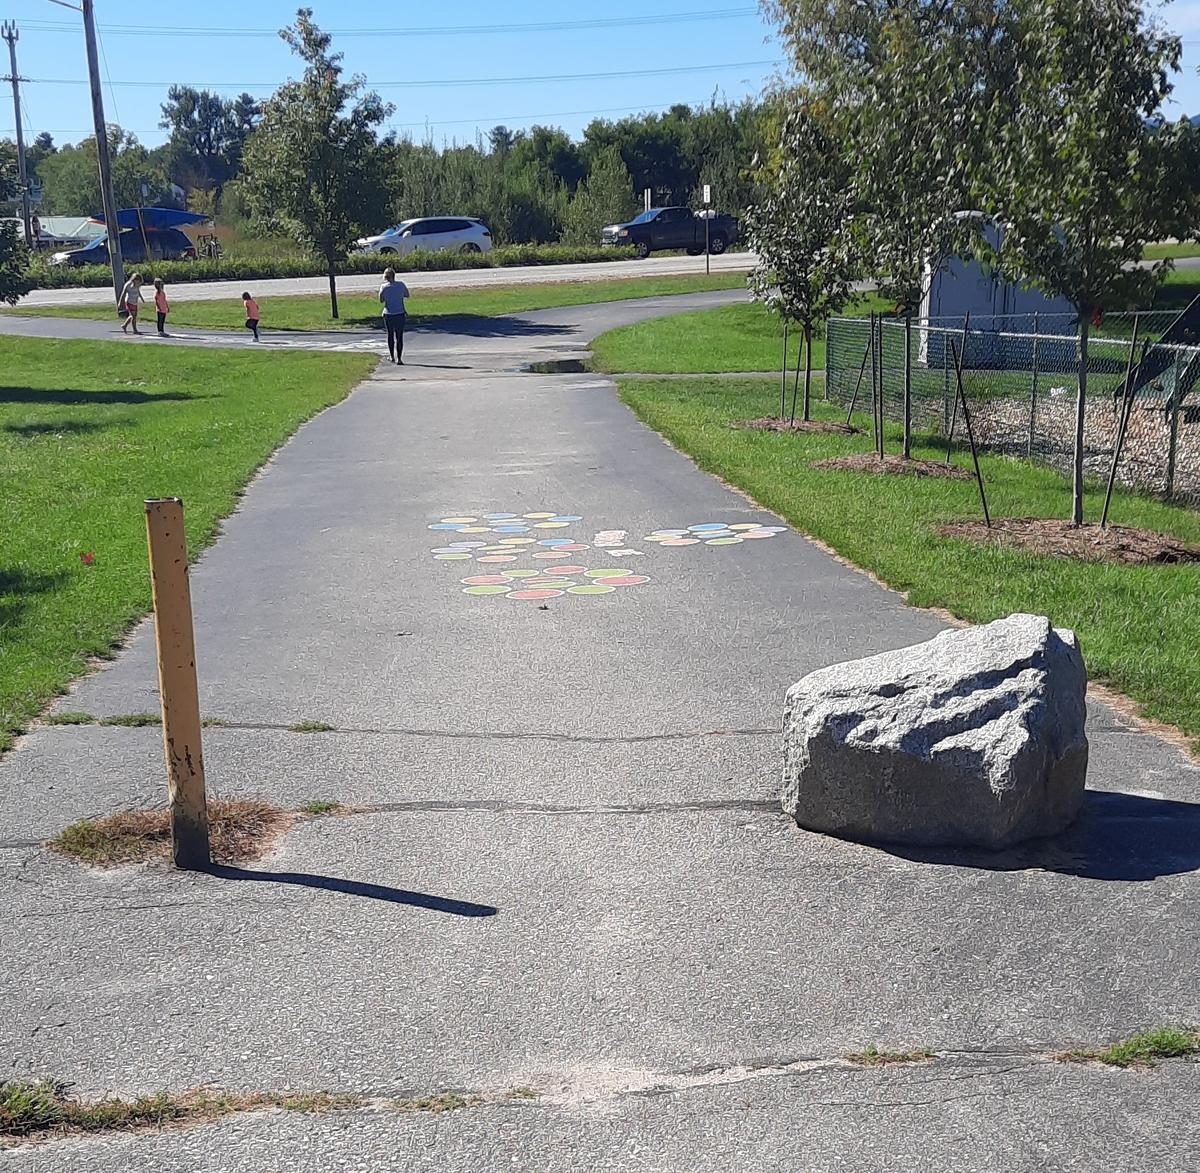 A rock and a pole block entrance to the Bethel Pathway to motorized vehicles, but allow wheelchairs and other wheeled devices through. Photo credit: Enock Glidden